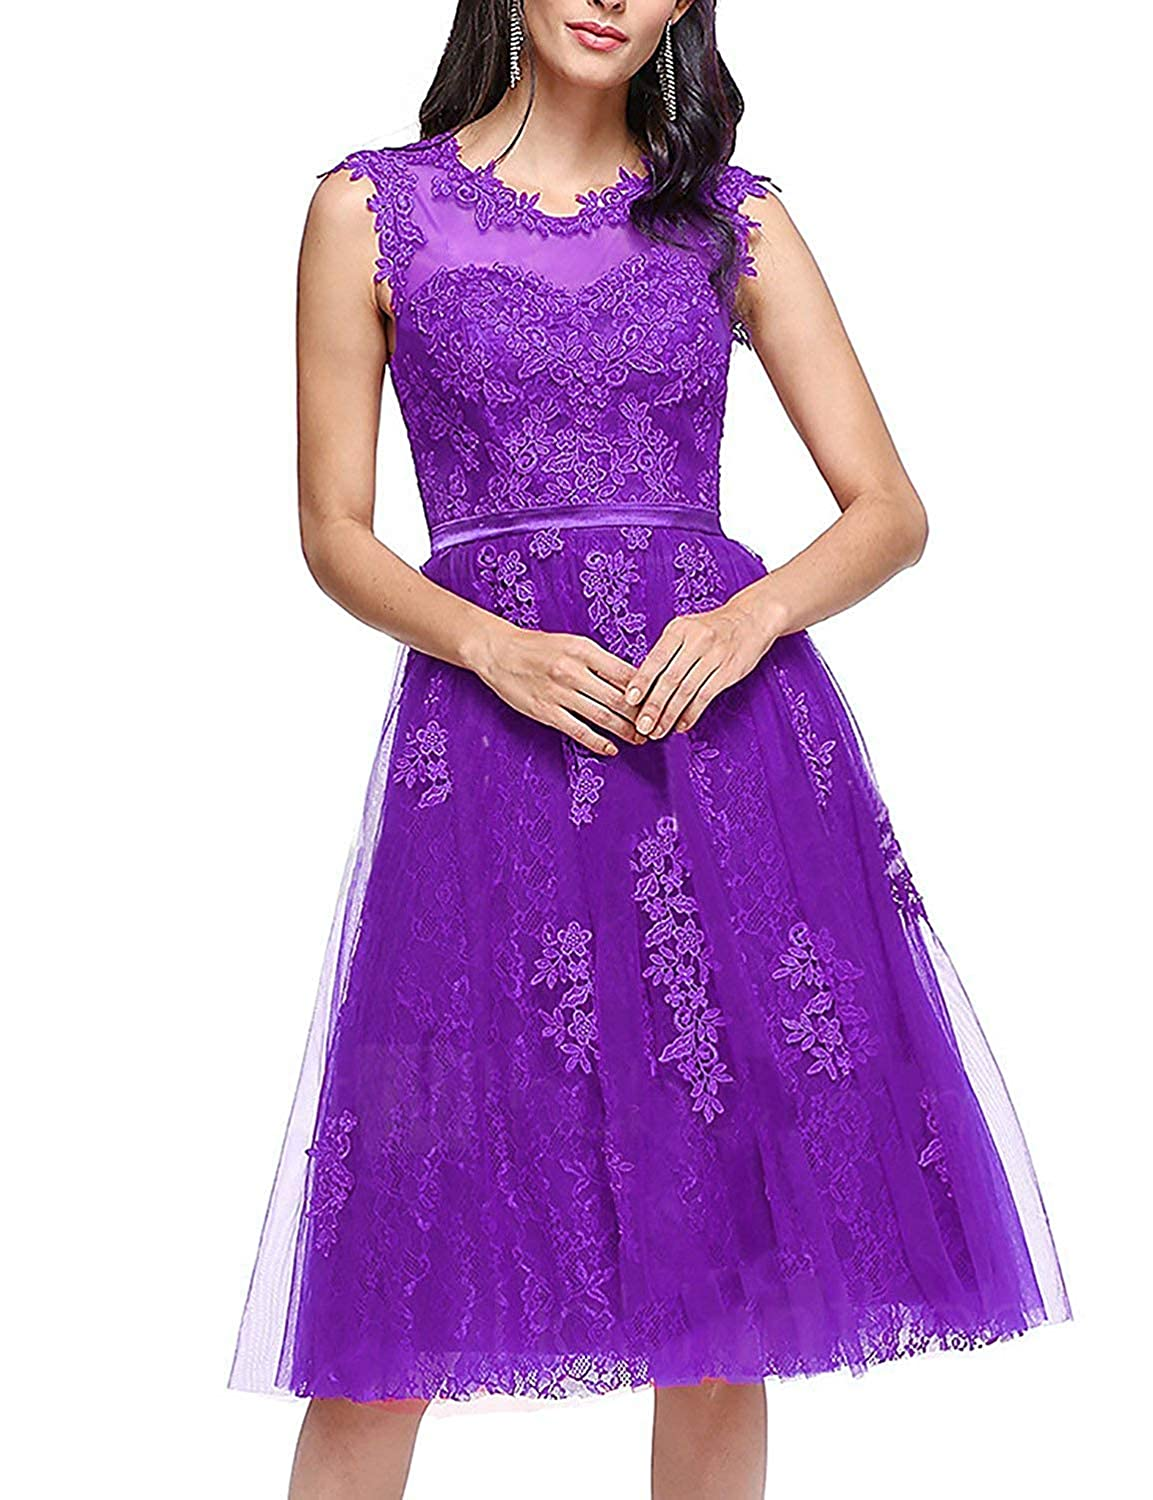 Light Purple ASBridal Bridesmaid Dresses Short Homecoming Dress Lace Cocktail Party Gowns Prom Gown Knee Length